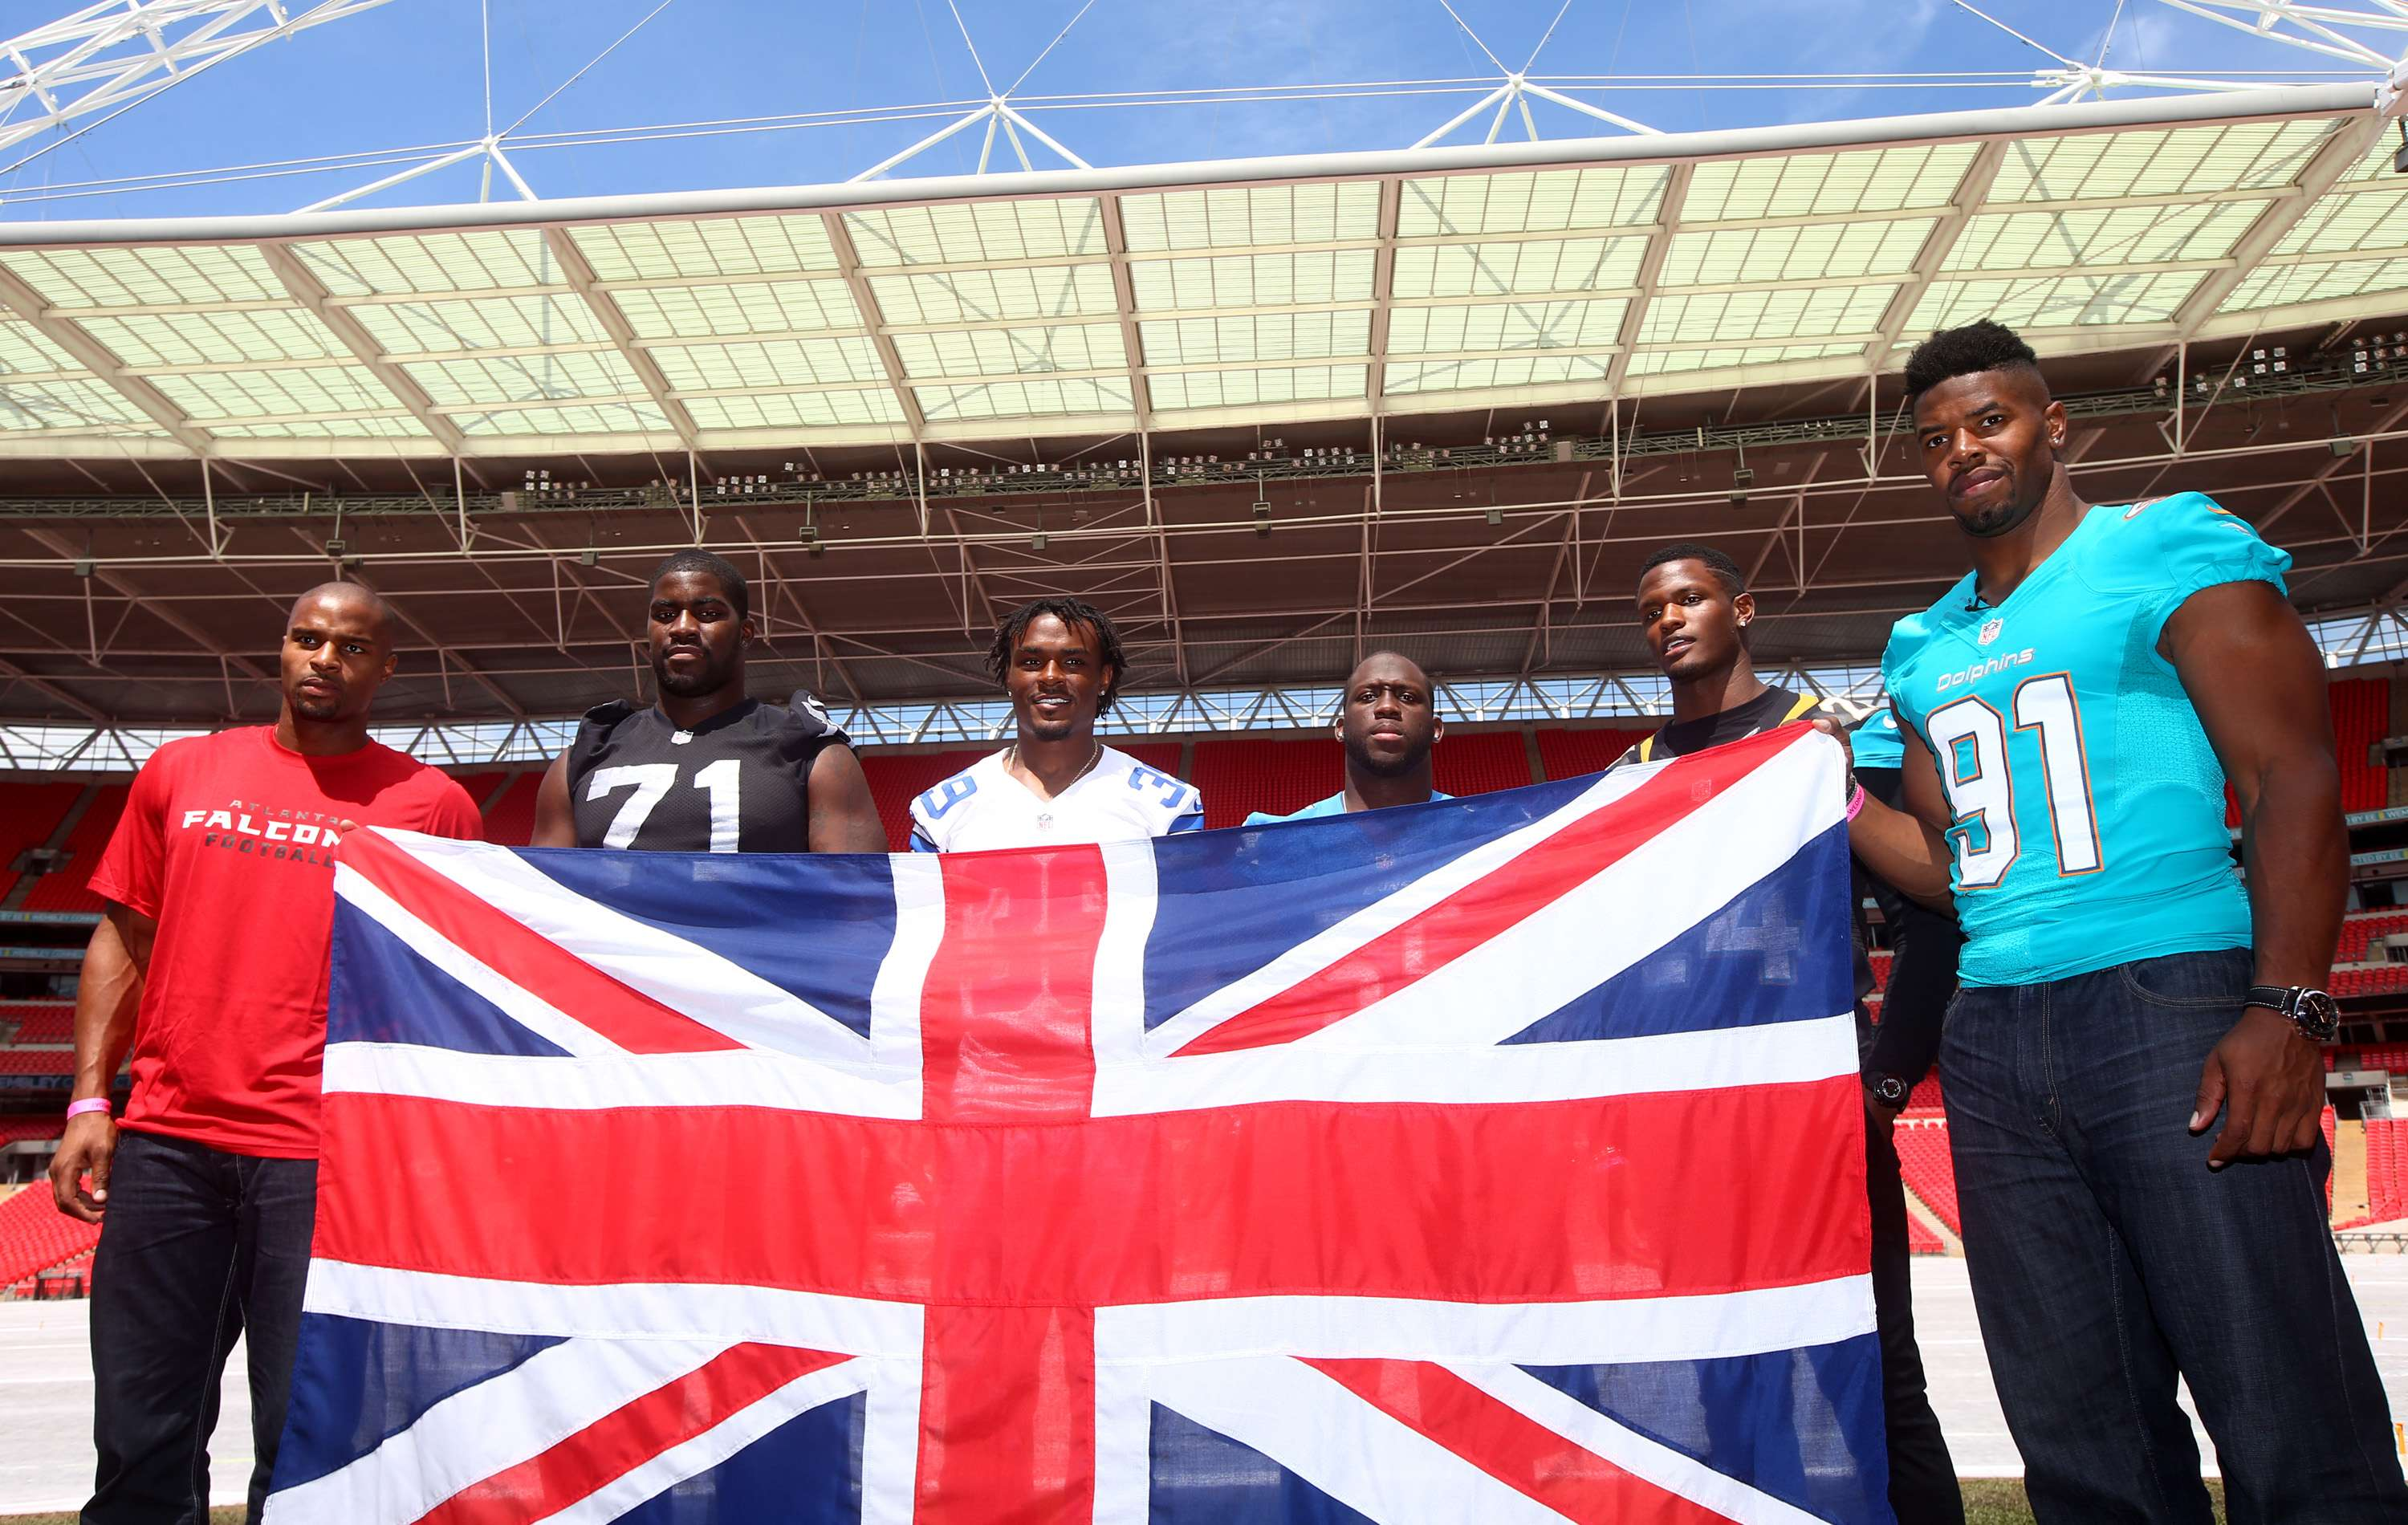 The NFL is back in London. Foto: Getty Images